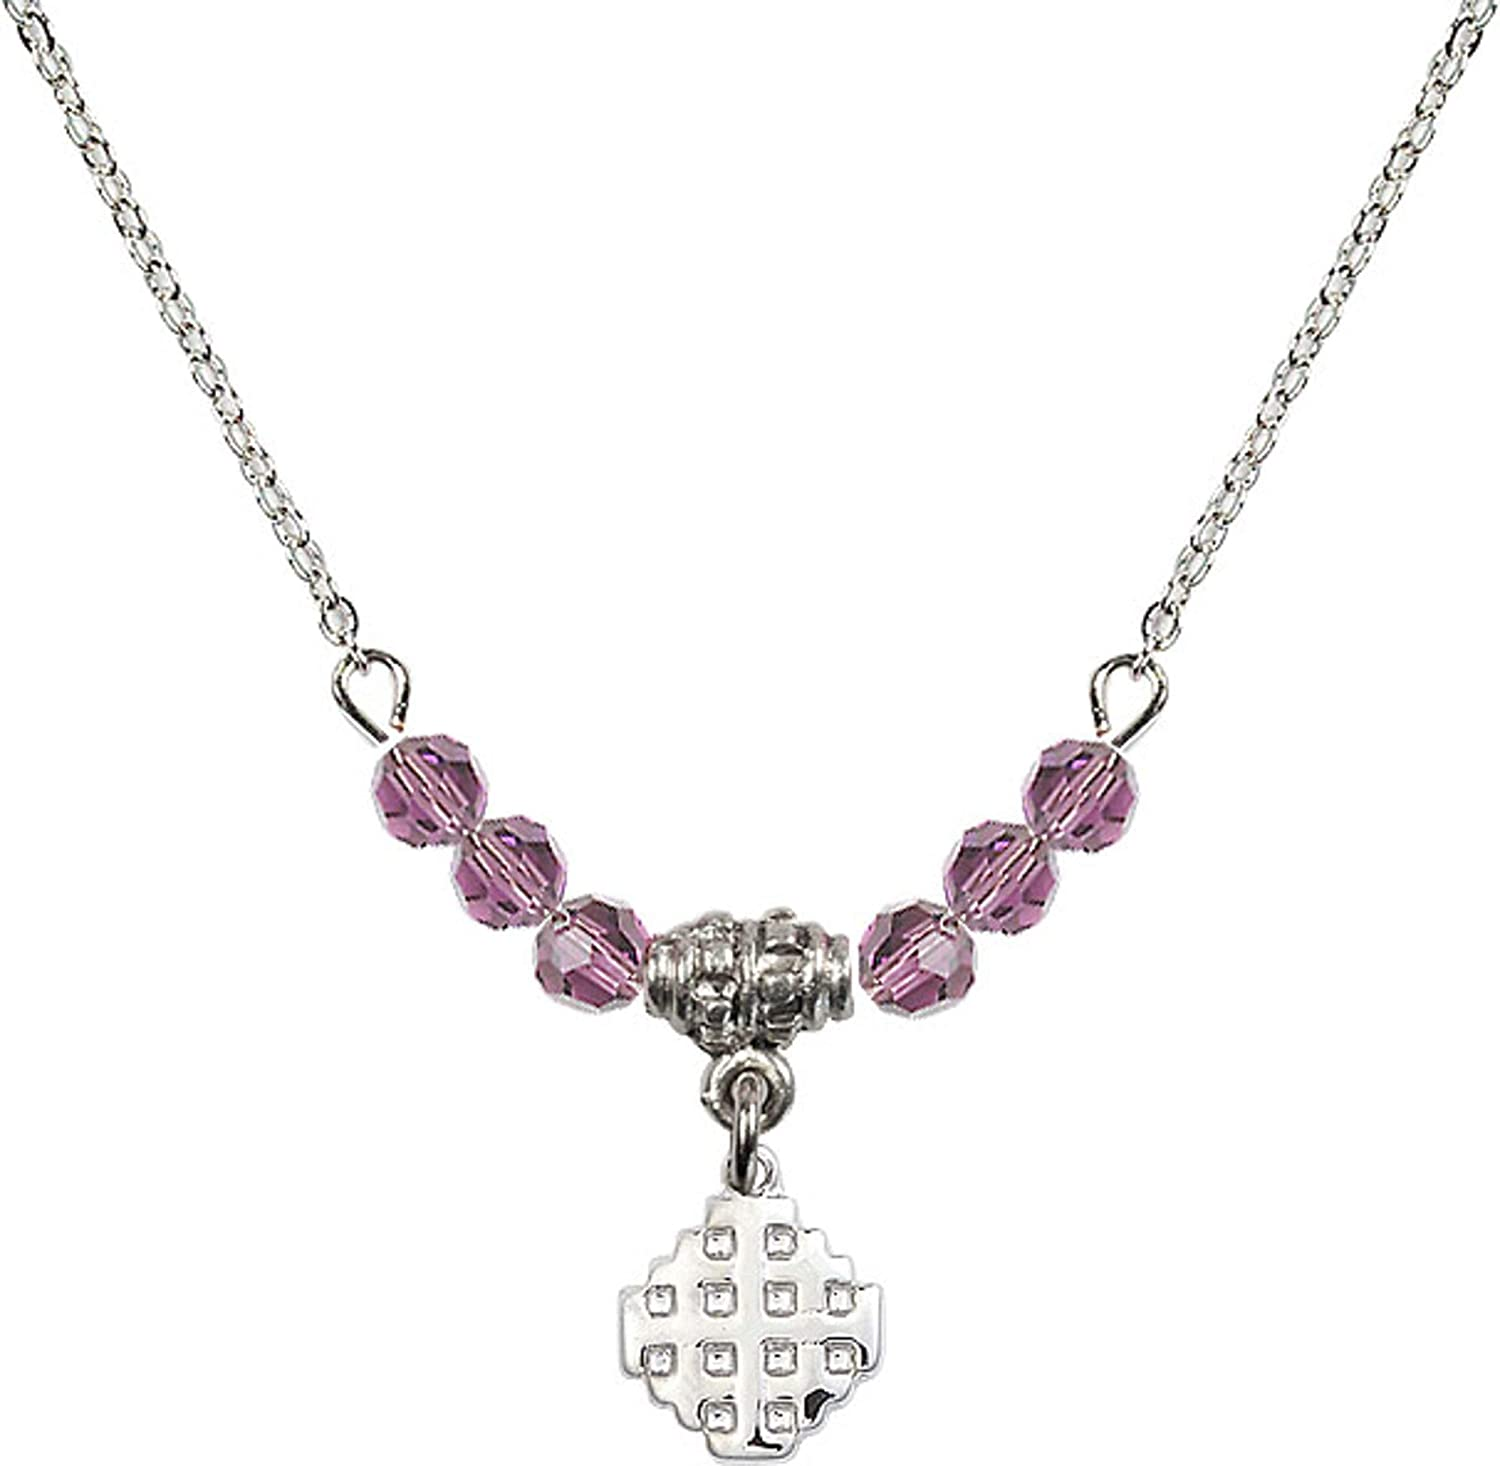 18 Inch Rhodium Plated Necklace w// 4mm Light Purple February Birth Month Stone Beads and Jerusalem Cross Charm